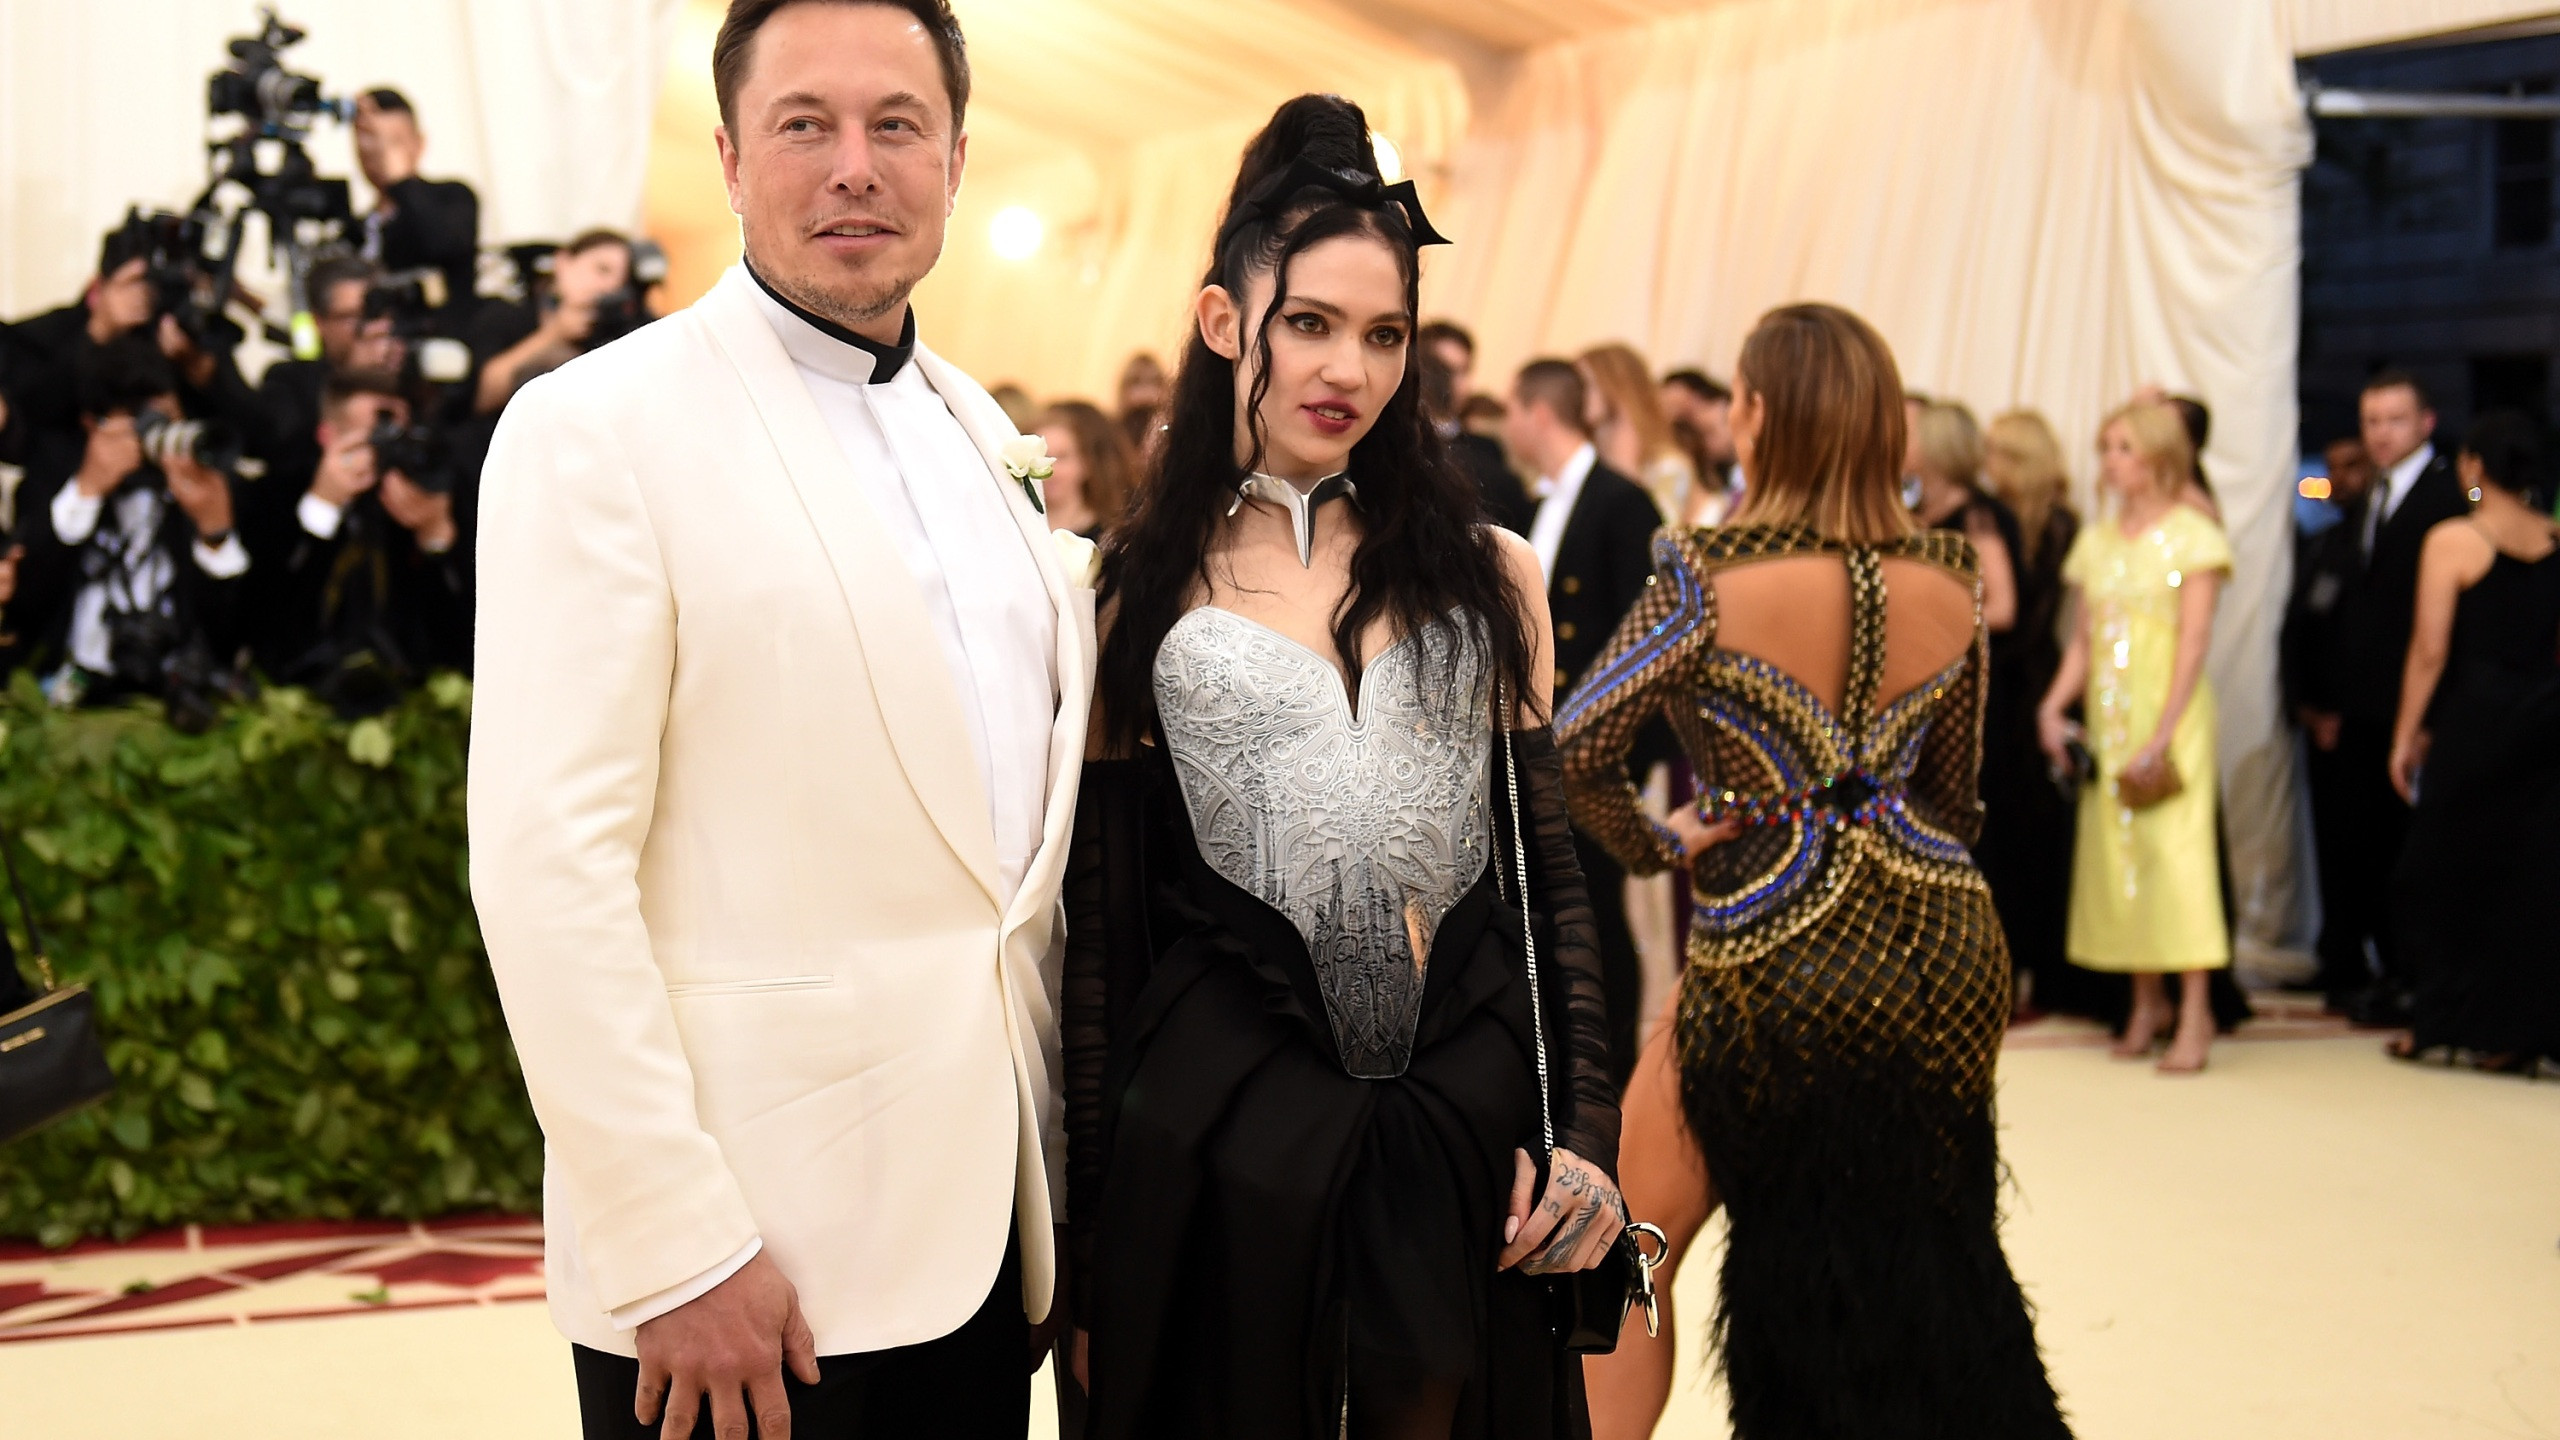 Elon Musk and Grimes attend the Heavenly Bodies: Fashion & The Catholic Imagination Costume Institute Gala at The Metropolitan Museum of Art on May 7, 2018 in New York City. (Jason Kempin/Getty Images)